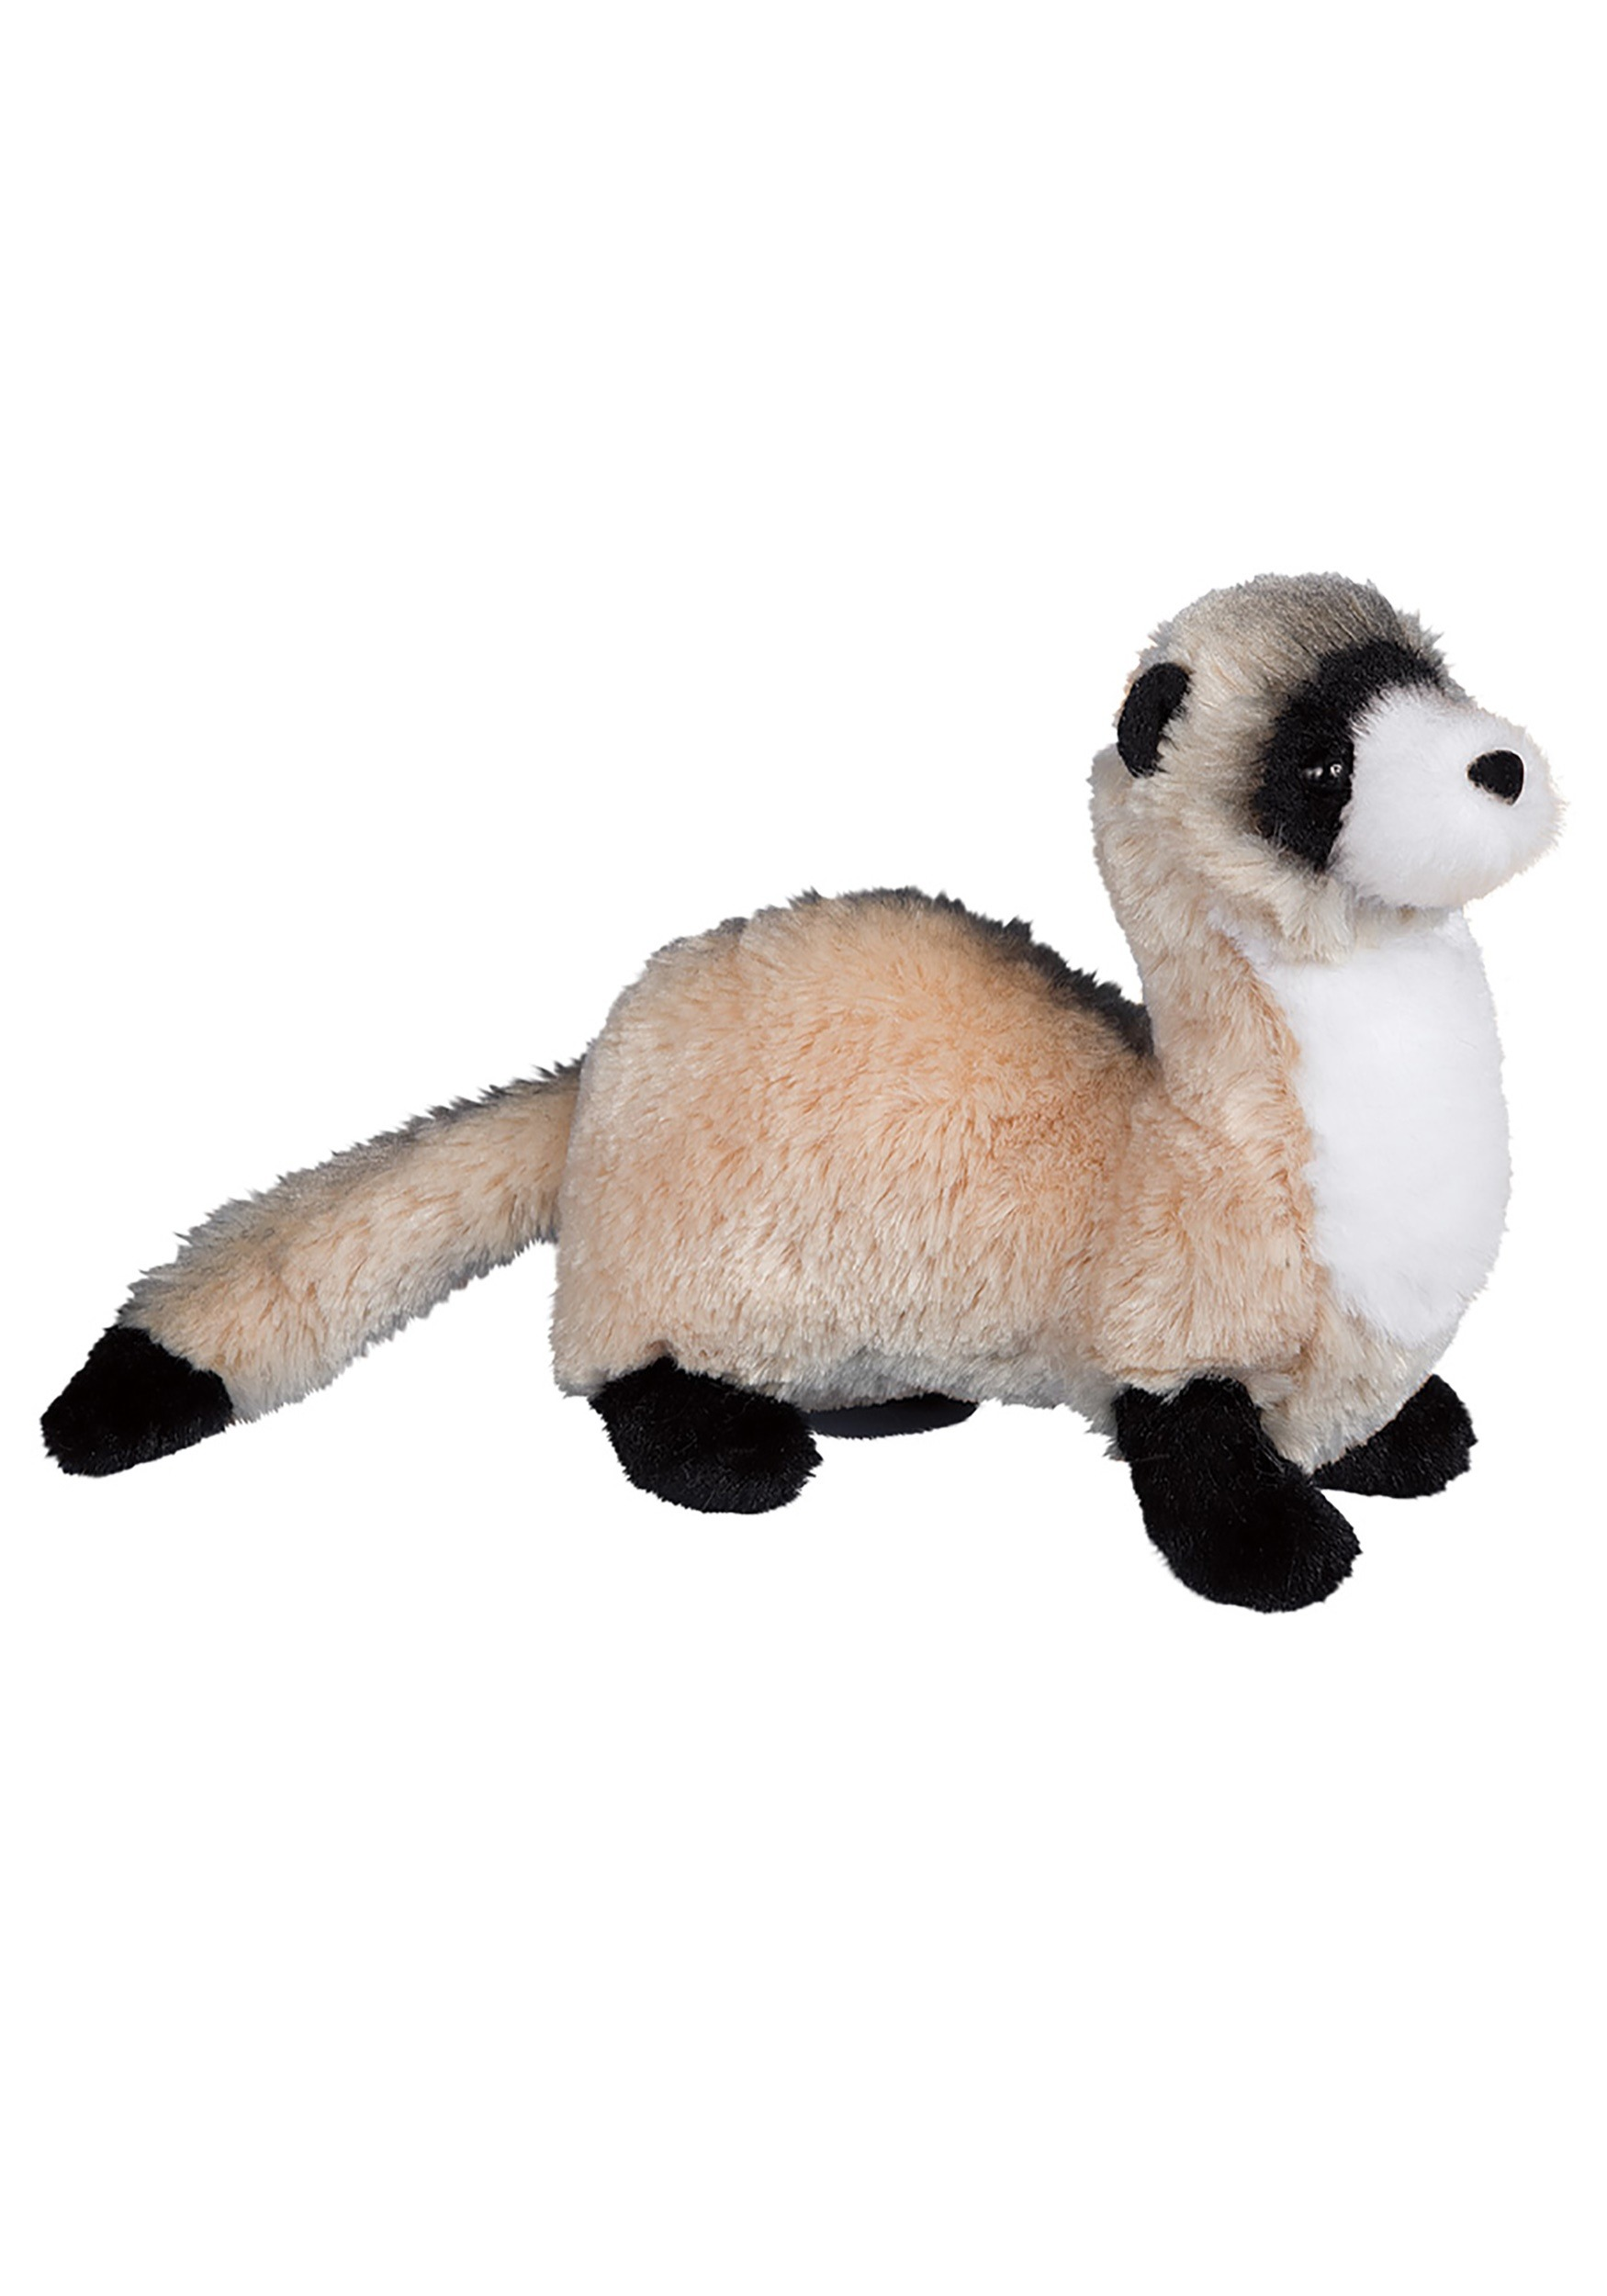 Vince the Black Footed Ferret 10 long Plush without tail